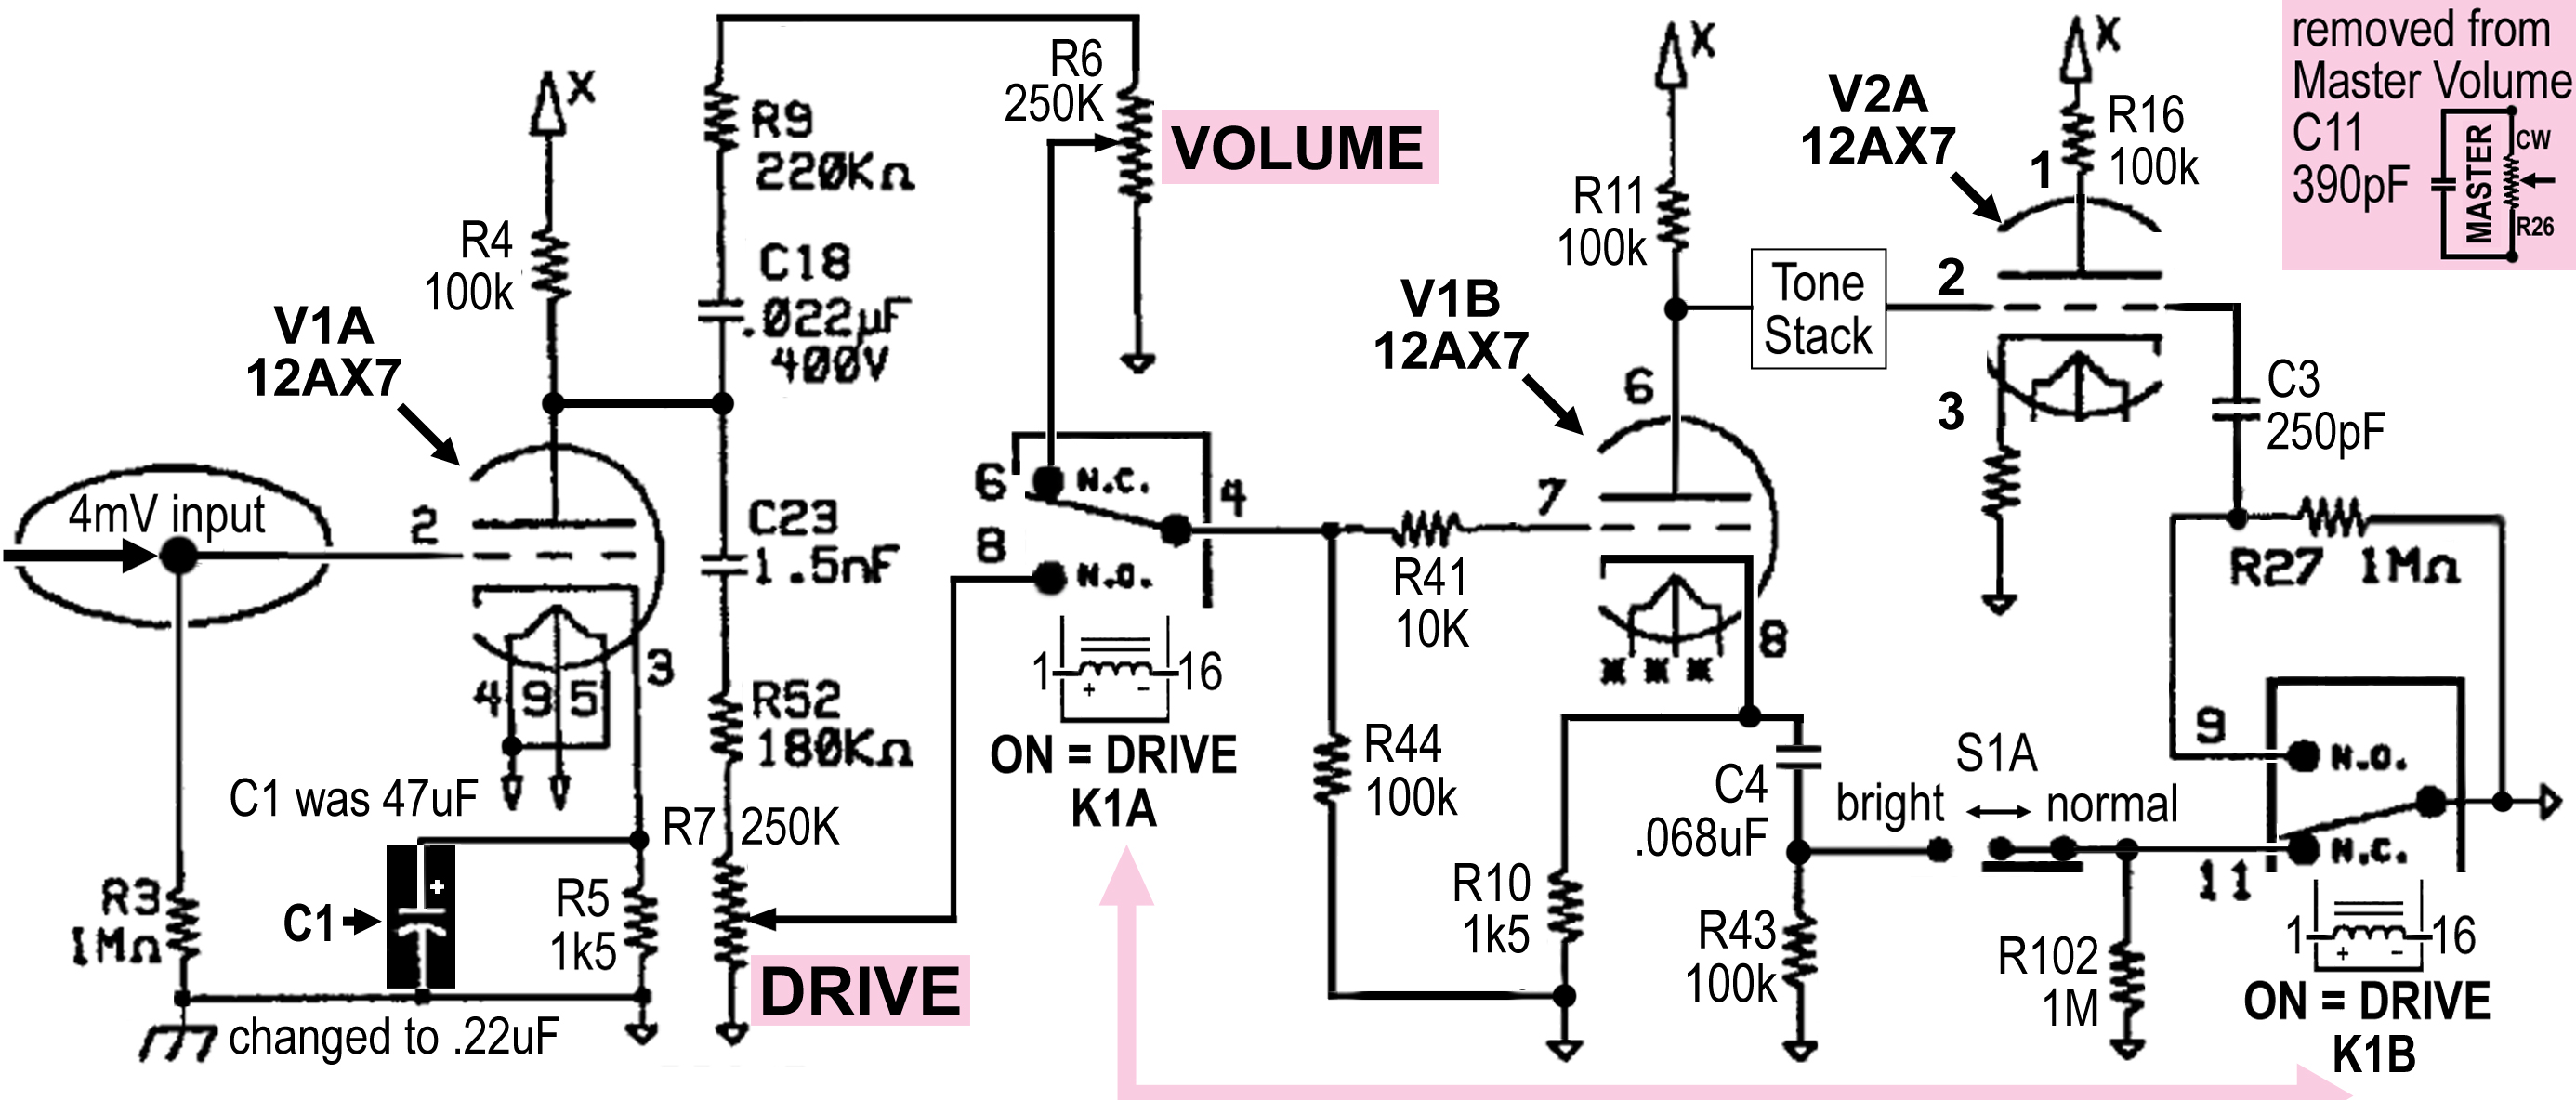 fender hot rod deluxe mods part 1 by eddie ciletti figure 1 simplified fender hot rod deluxe preamp schematic capacitor c1 shown in reverse video is the key component change